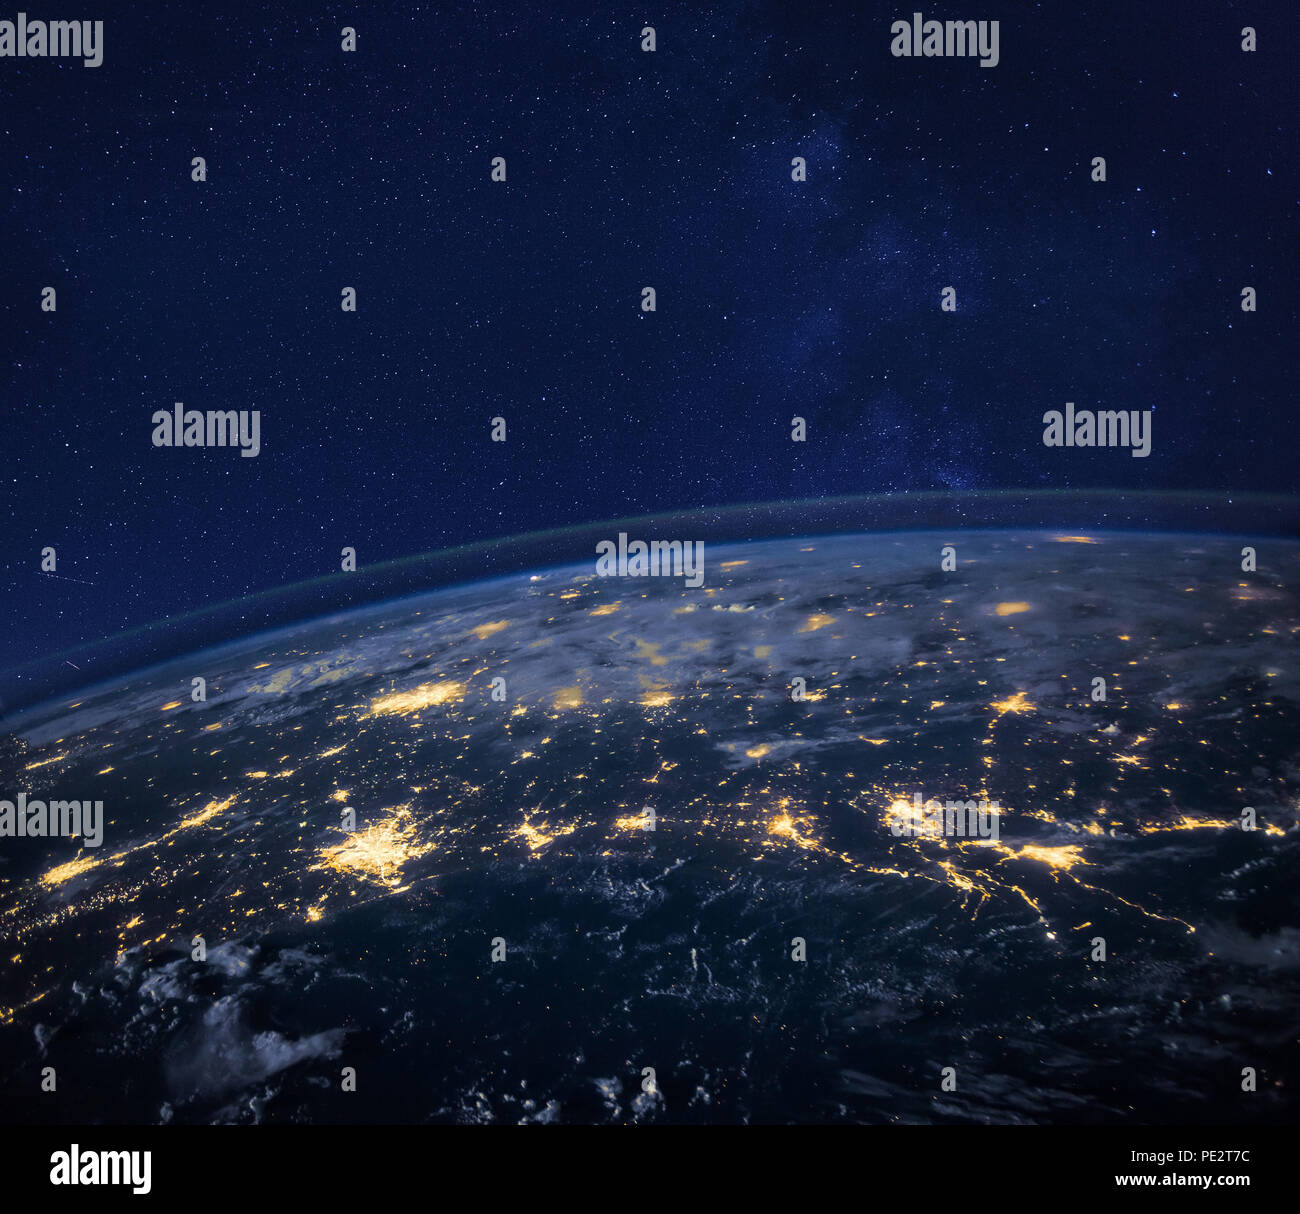 night view of planet Earth from space, beautiful background with lights and stars, close up, original image furnished by NASA - Stock Image